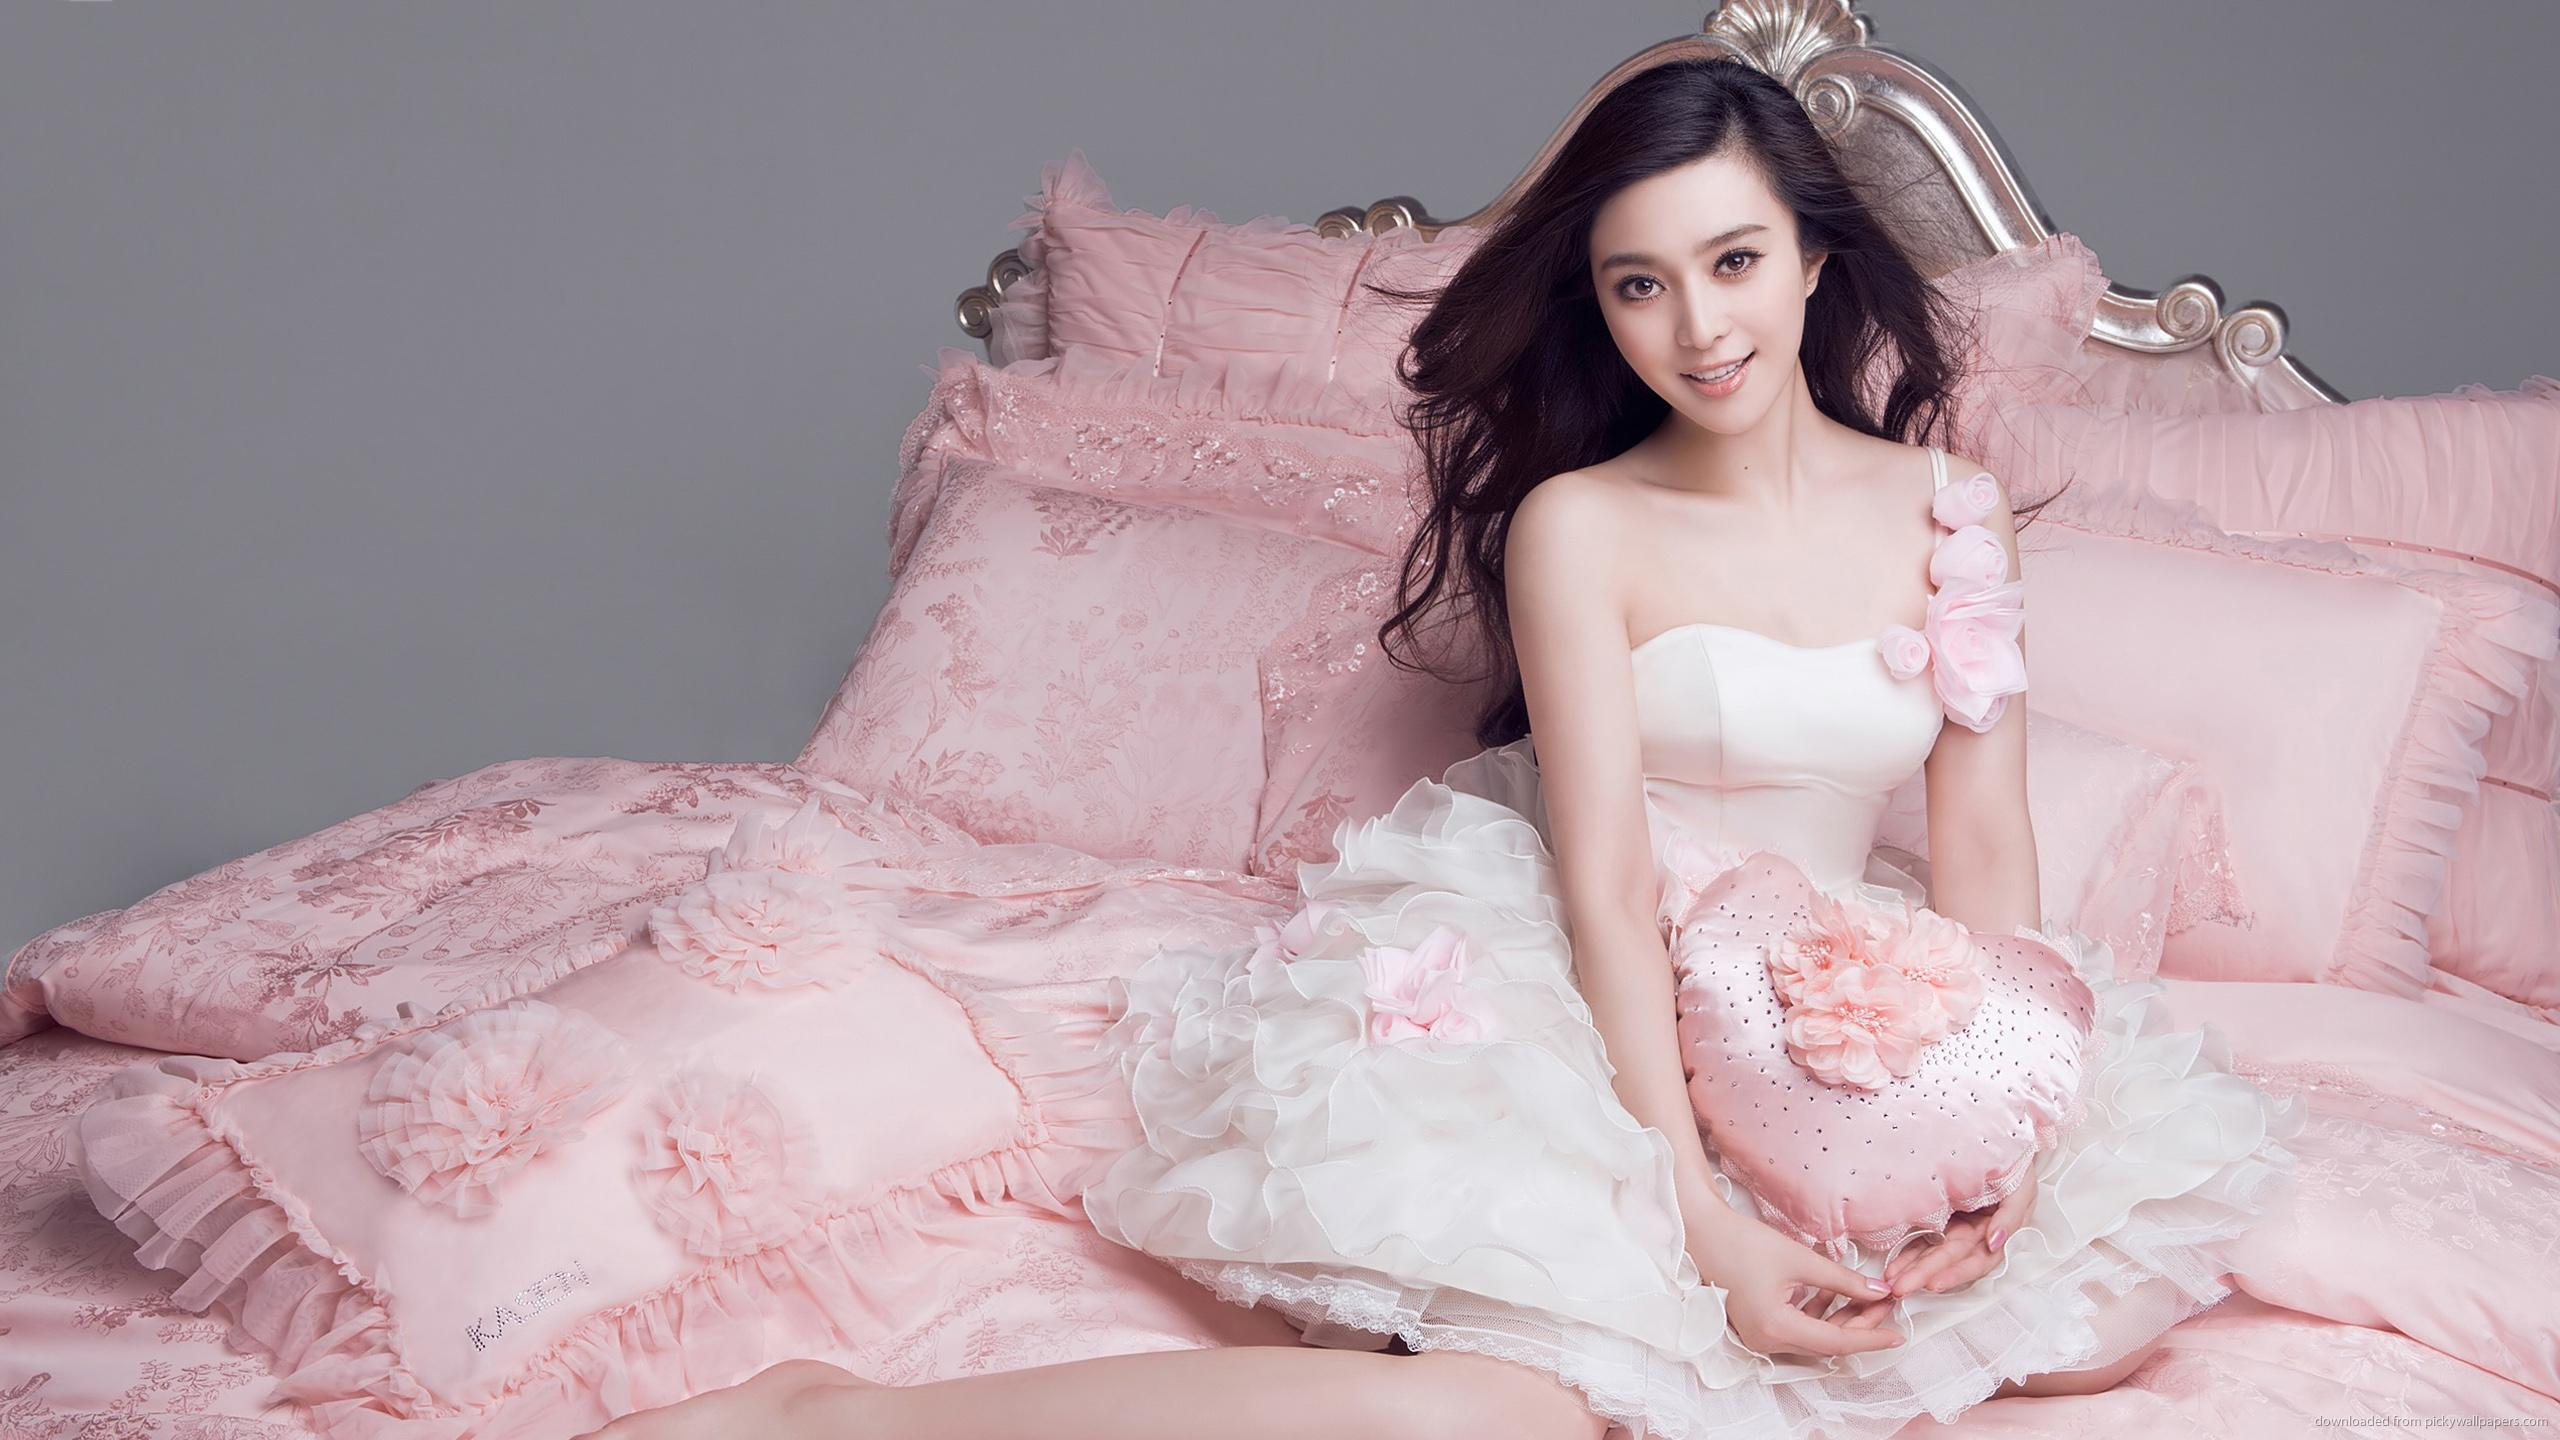 fan-bingbing-light-dress.jpg